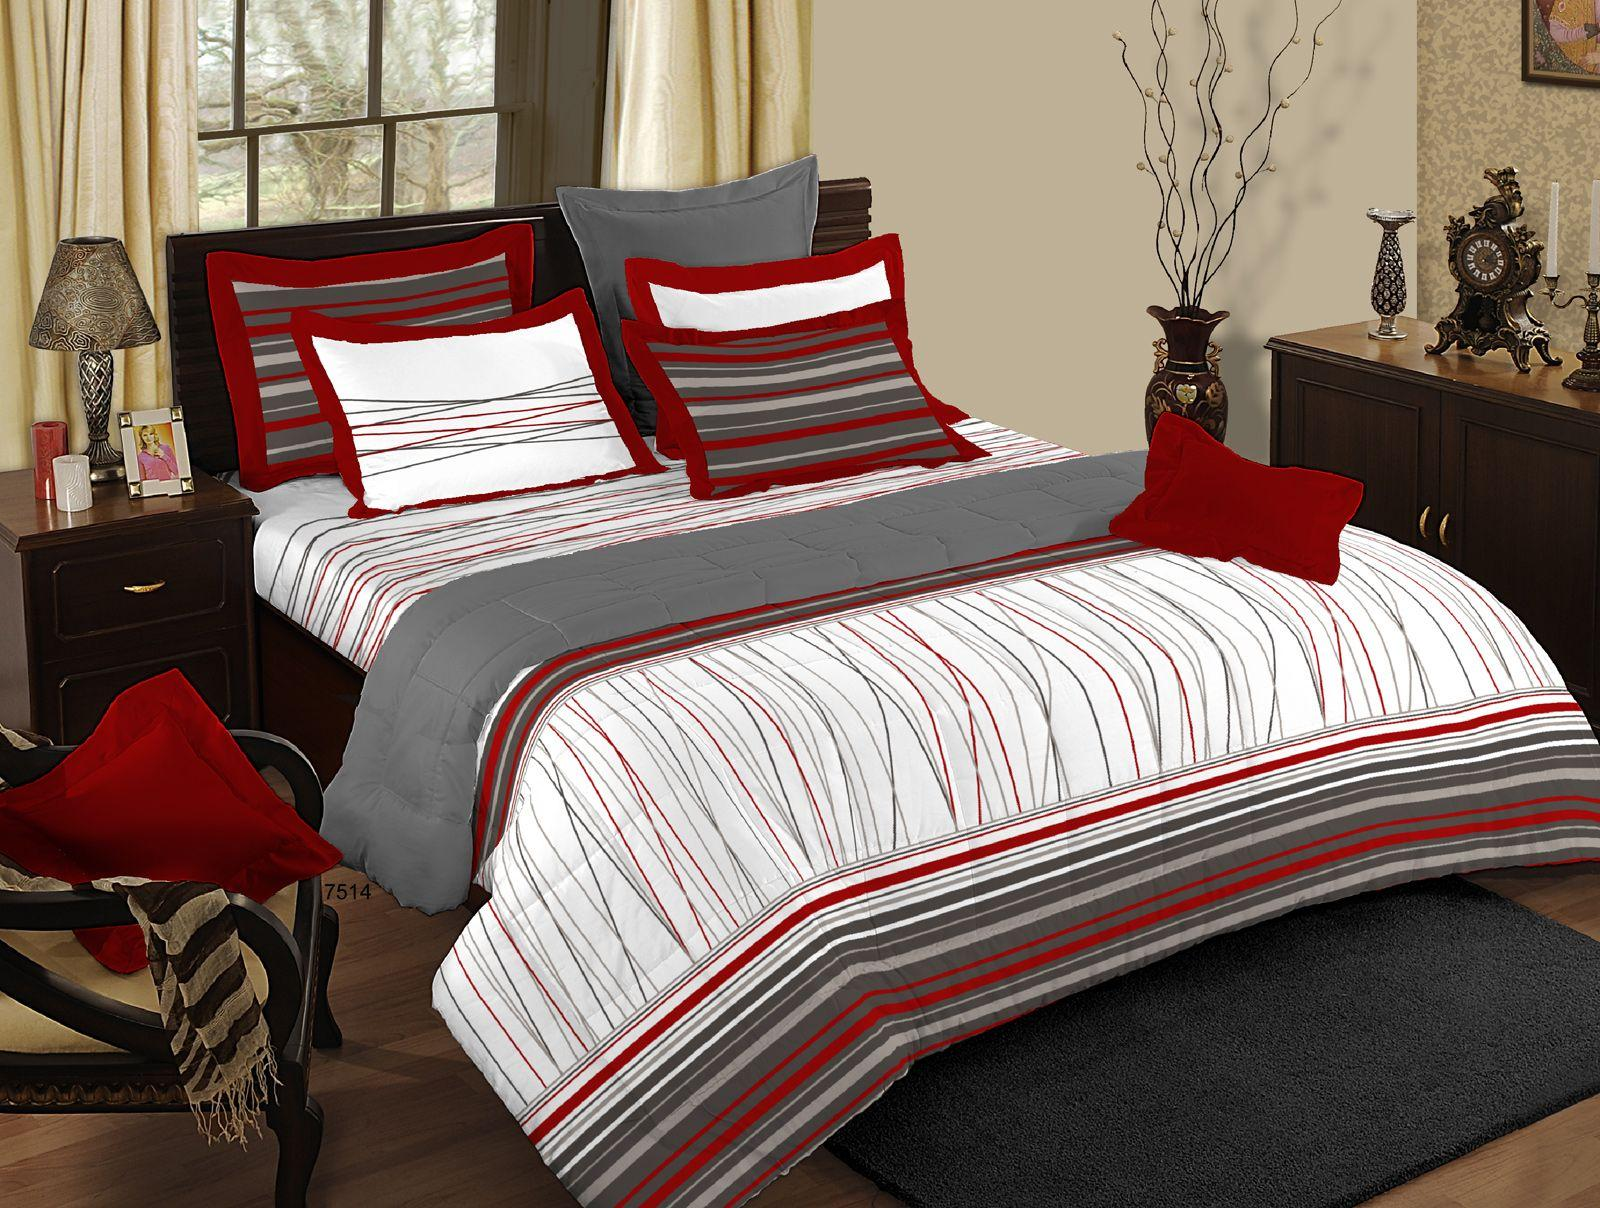 Fun bed sheets ideas homesfeed for Bedroom bed designs images